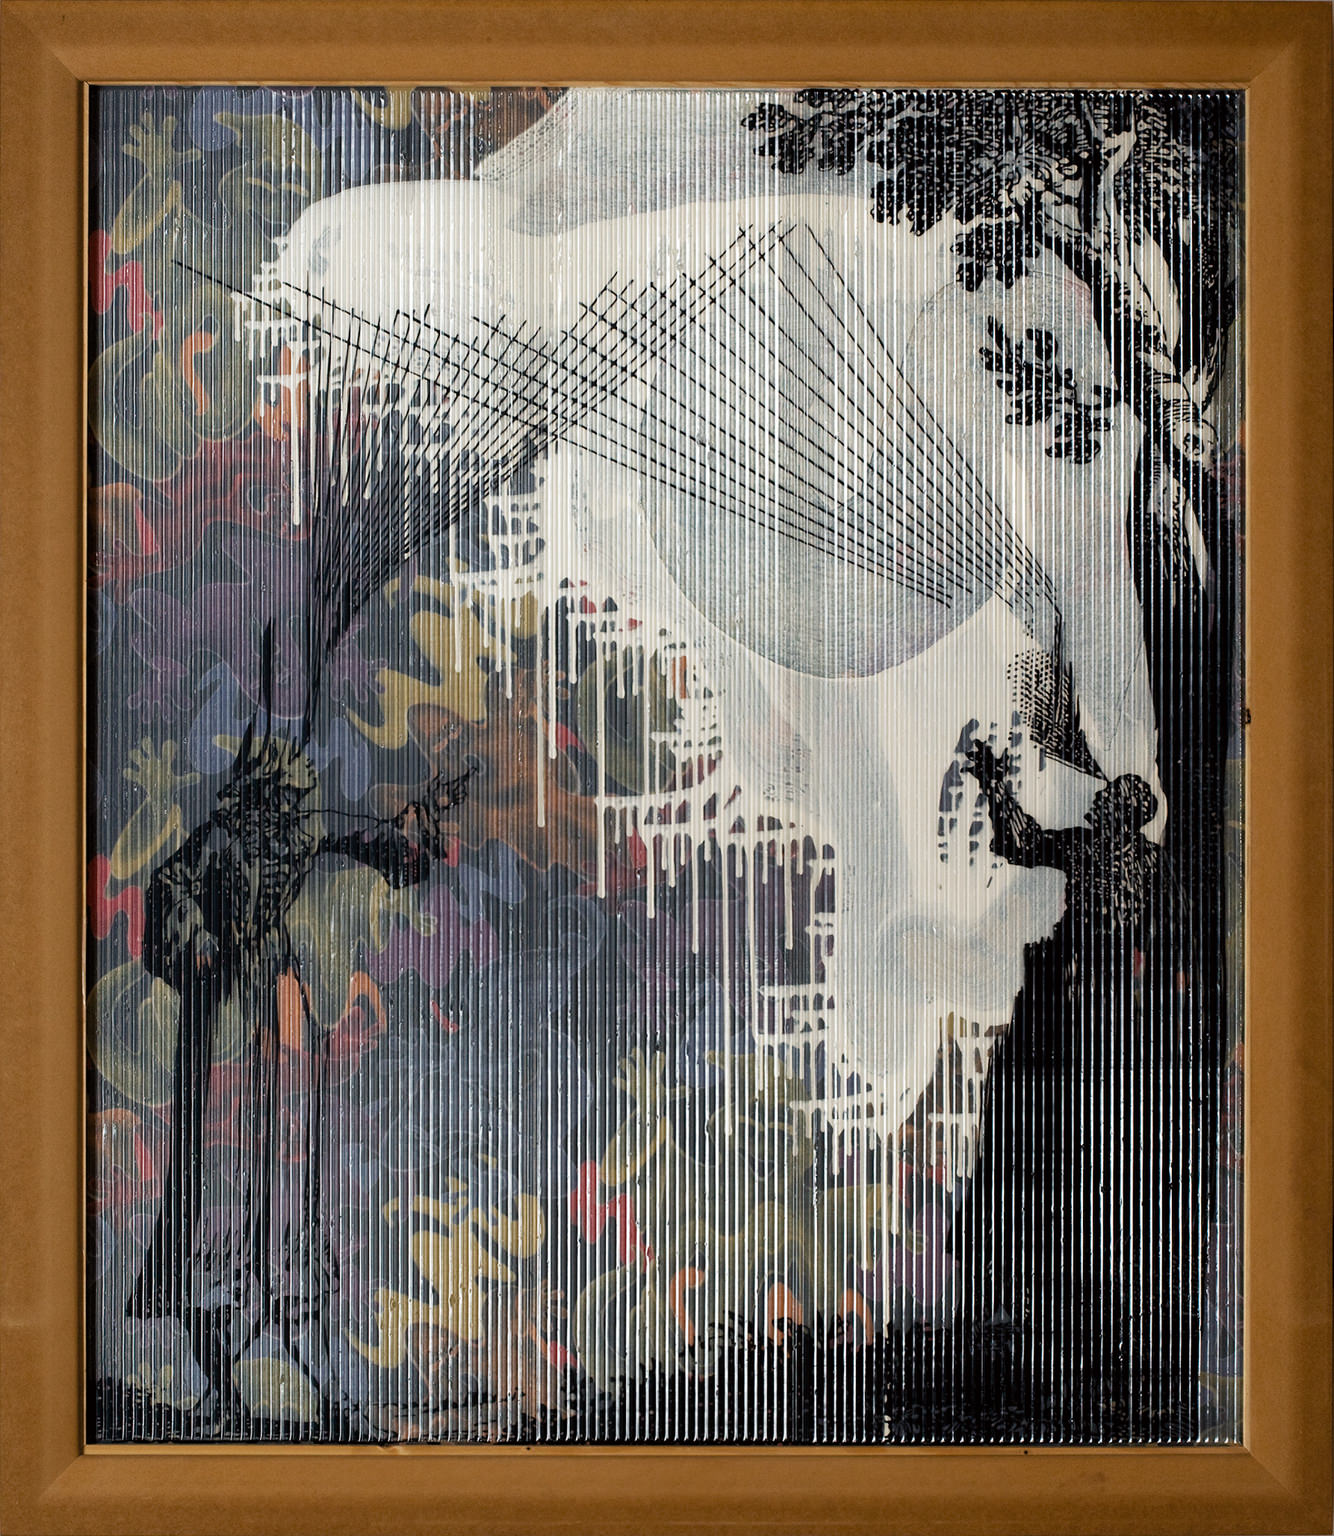 Strahlen Sehen(2006-2007) by Sigmar Polke, Lambrecht-Schadebergcollection, ContemporaryArt museum, Siegen. The Estate of Sigmar Polke, Cologne/VG Bild-Kunst, Bonn,2016.  Another characteristic of major artists is to keep something back. The canvas reveals as much as it hides. His Message de Marie-Antoinette à la Conciergerie (1989), from a series devoted to the French Revolution, appears initially as a majestic work of abstraction. But the closer you get the more you notice these granular effects. In fact the tableau was pierced using a needle to reproduce a code sent by Marie-Antoinette to the Count Fersen. For Polke painting is a theatre of mysterious shadows, a grand décor that sometimes requires us to peep behind the scenes. In fact showing the other side of the work is exactly what the Palazzo Grassi proposes in its atrium, where the Axial Age (2005) are installed, these gigantic translucent canvases where a yellowish liquid becomes purple through exposure to the sun. Perfect examples of alchemy in action. Here in the atrium, for once, you can actually walk around the paintings and observe the backs…which are as interesting as the fronts. The painter often painted both sides of his canvas to achieve effects of transparency. Occasionally you can even perceive the stretching frame. It's almost like Polke was constantly reminding us that while painting can be transcendent it still remains nothing more than canvas and wood. While magic is at work, never be fooled. The theme of theatre often takes centre stage in his paintings. In 2005 Polke did two works that complete each other, one being the negative of the other. There are tiny painted figures representing the characters and animals of a circus. As was his way, he projected recuperated images onto enormous canvases in order to reproduce them with his own hands, often at night. An image he would select according to colour and motif that he would then integrate fully into his own composition.